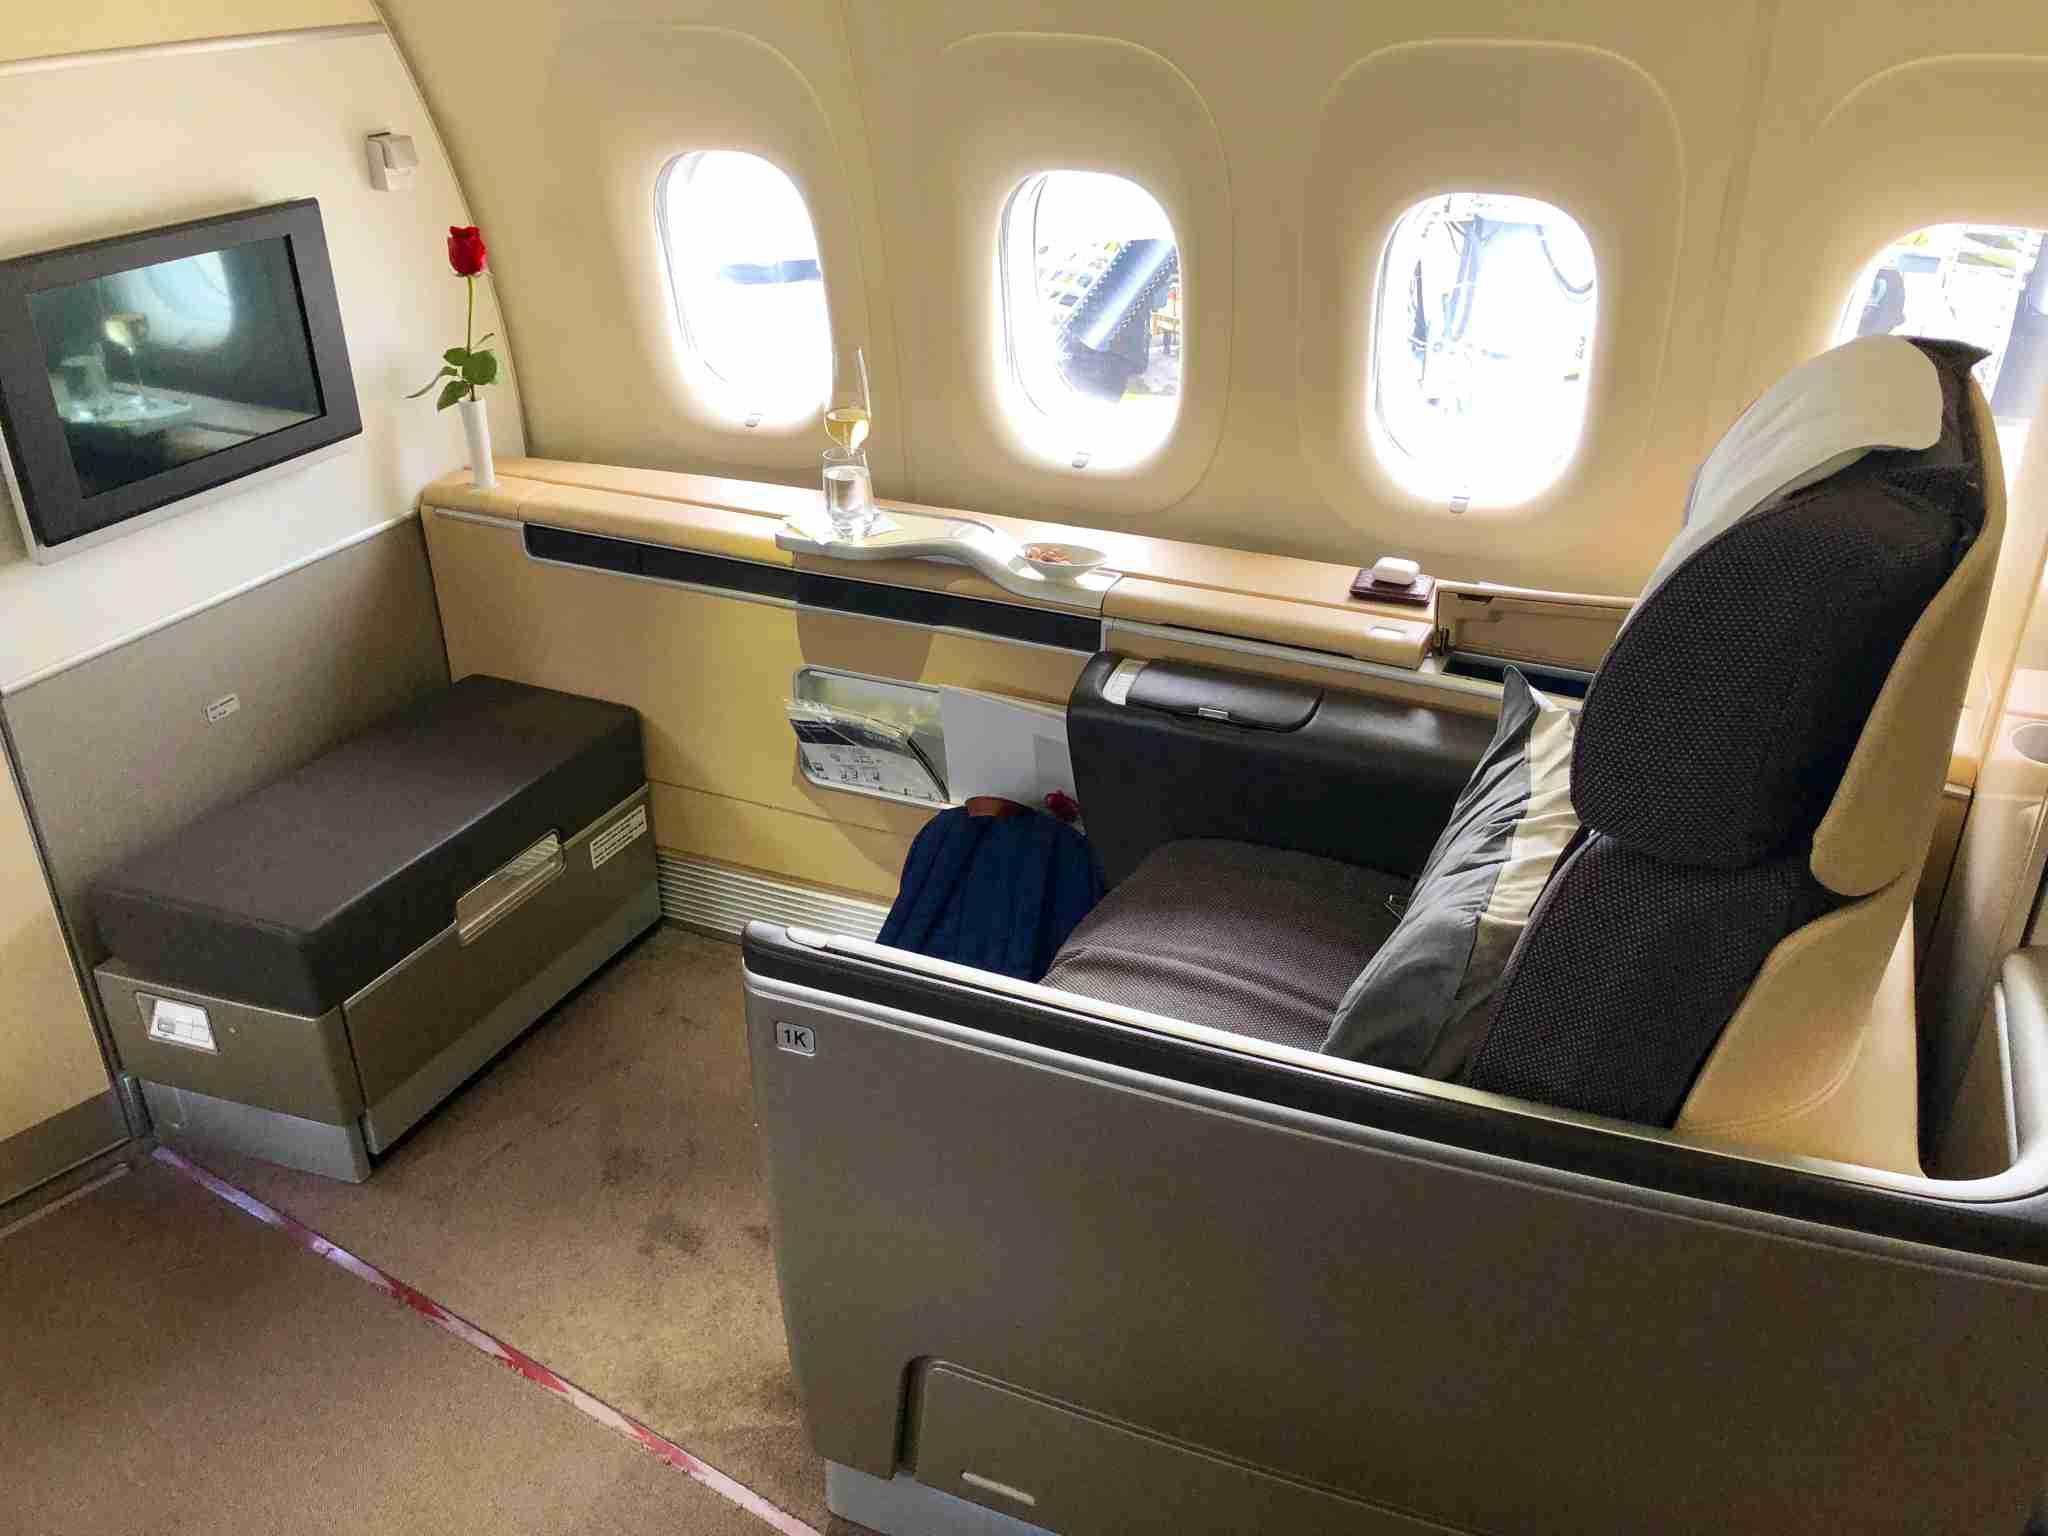 Use Avianca Life Miles to book Lufthansa first class awards with no fuel surcharges